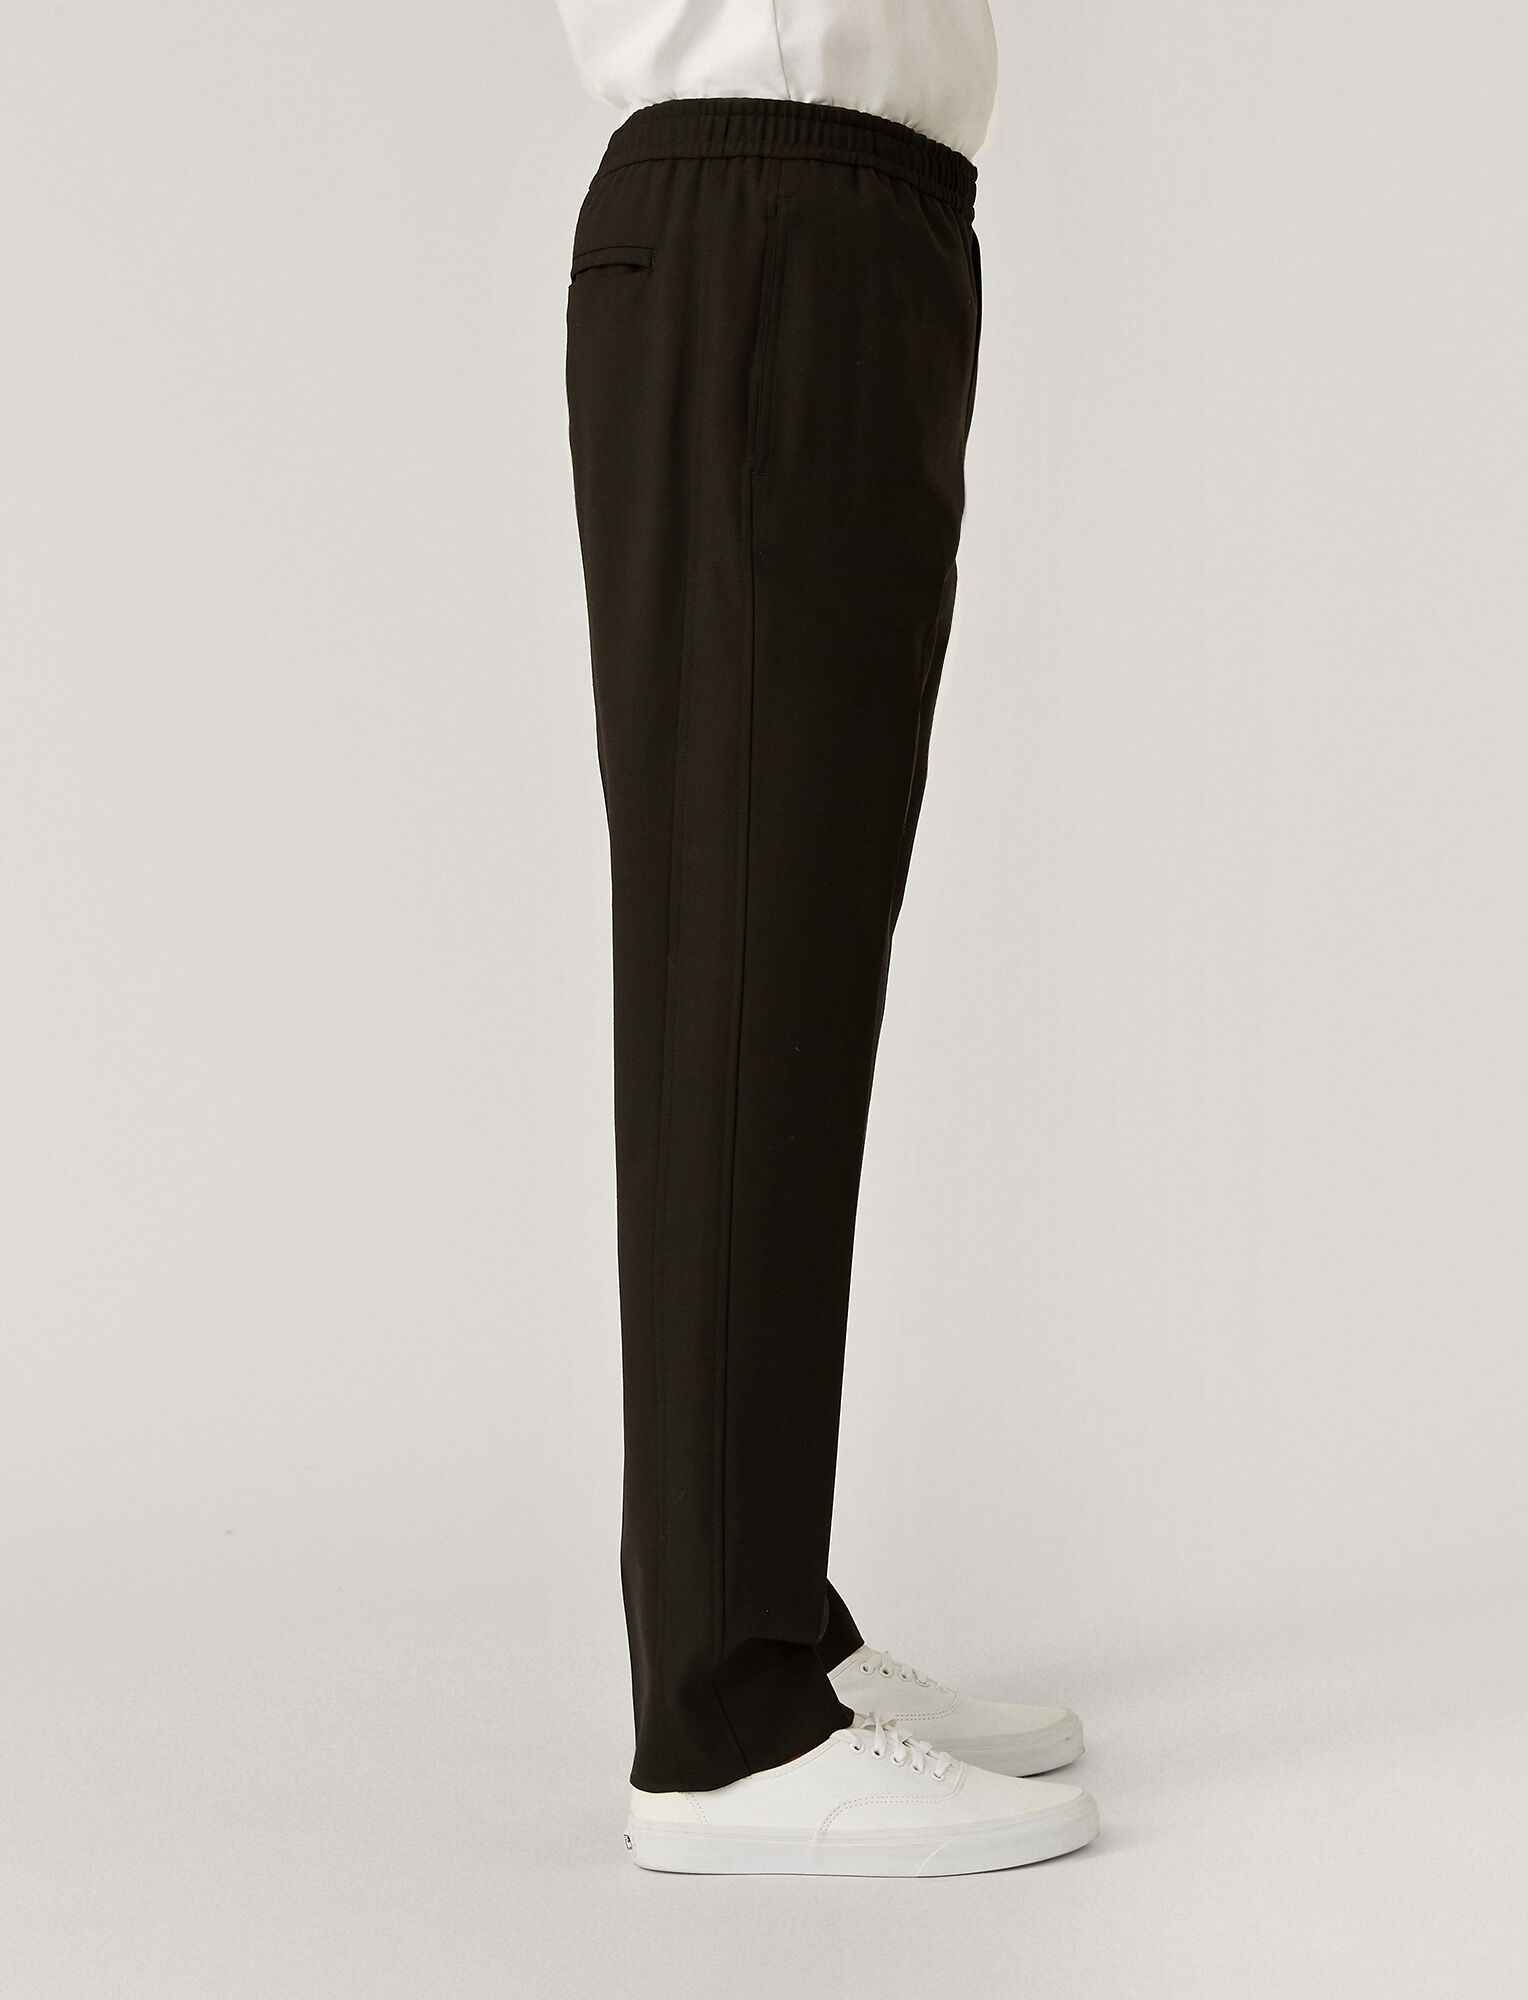 Joseph, Techno Wool Stretch Trousers, in Black